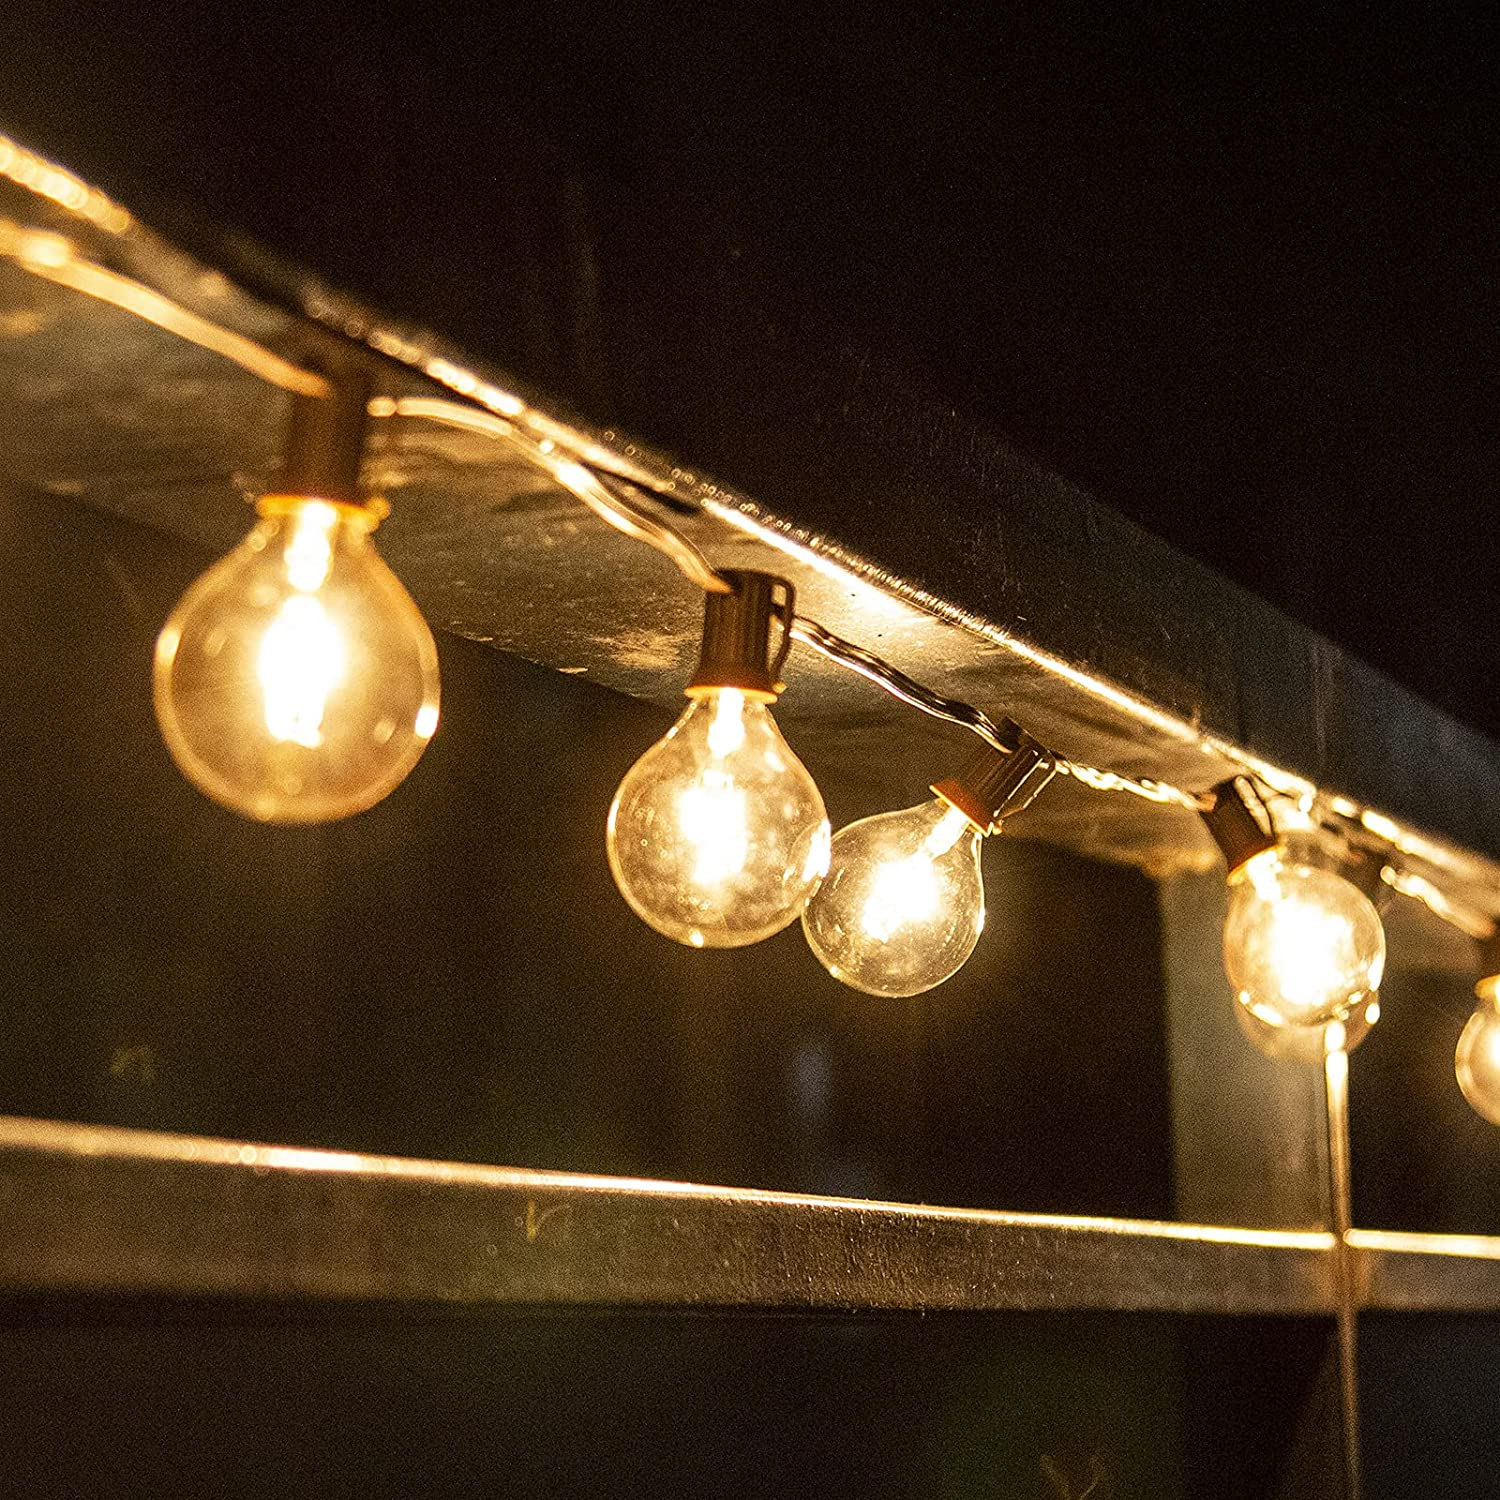 PEIDUO String Lights 12 FT G50 Globe Patio Lights with 12 Edison Glass Bulbs(1 Spare), Waterproof Connectable Hanging Light for Camper Backyard Porch Balcony Yard Party Decor